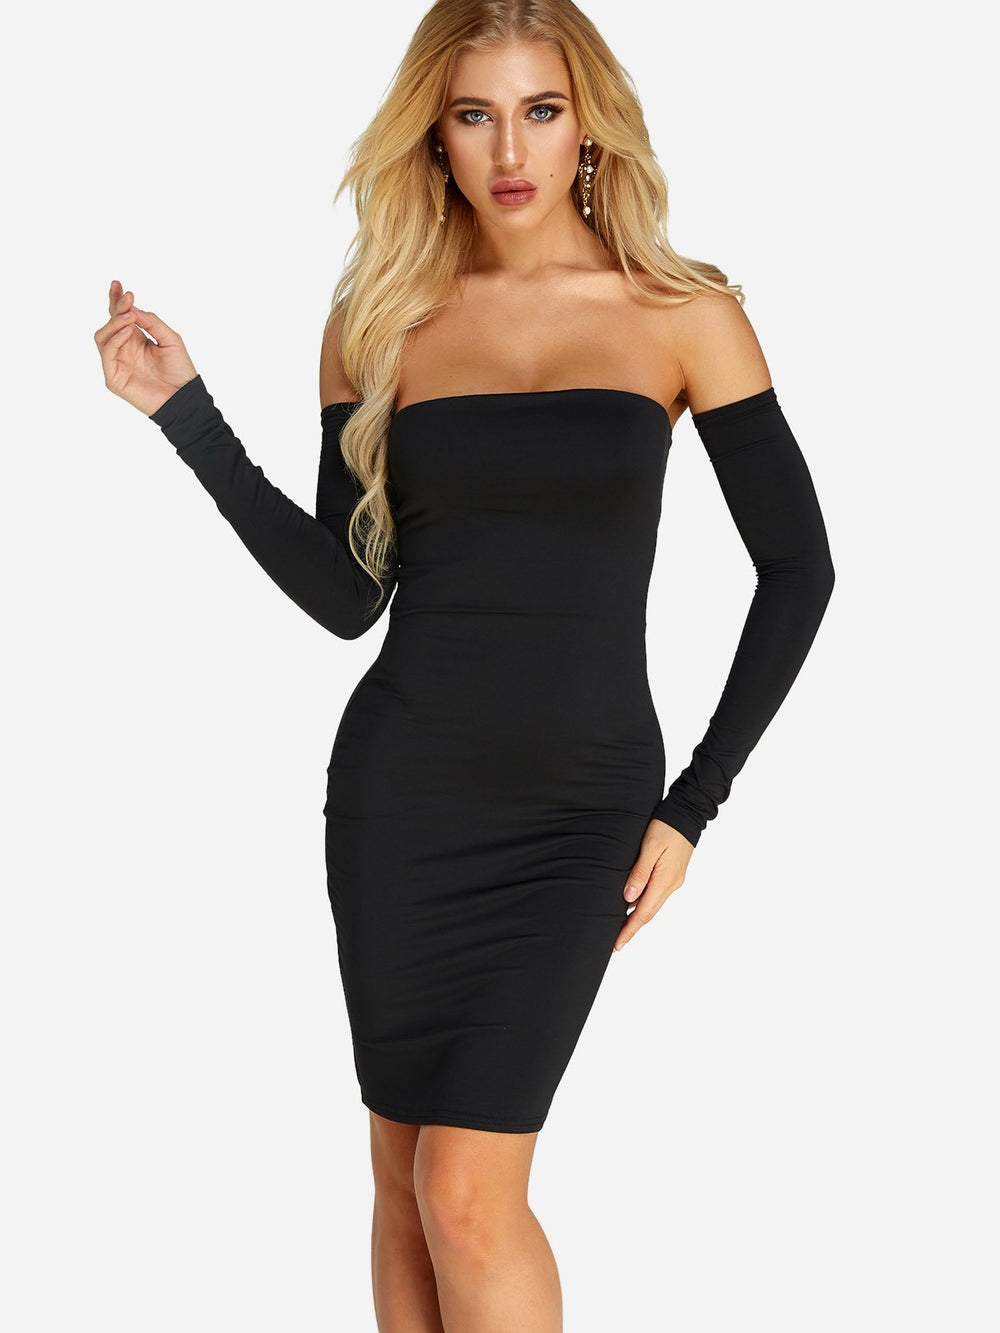 Ladies Black Off The Shoulder Dresses